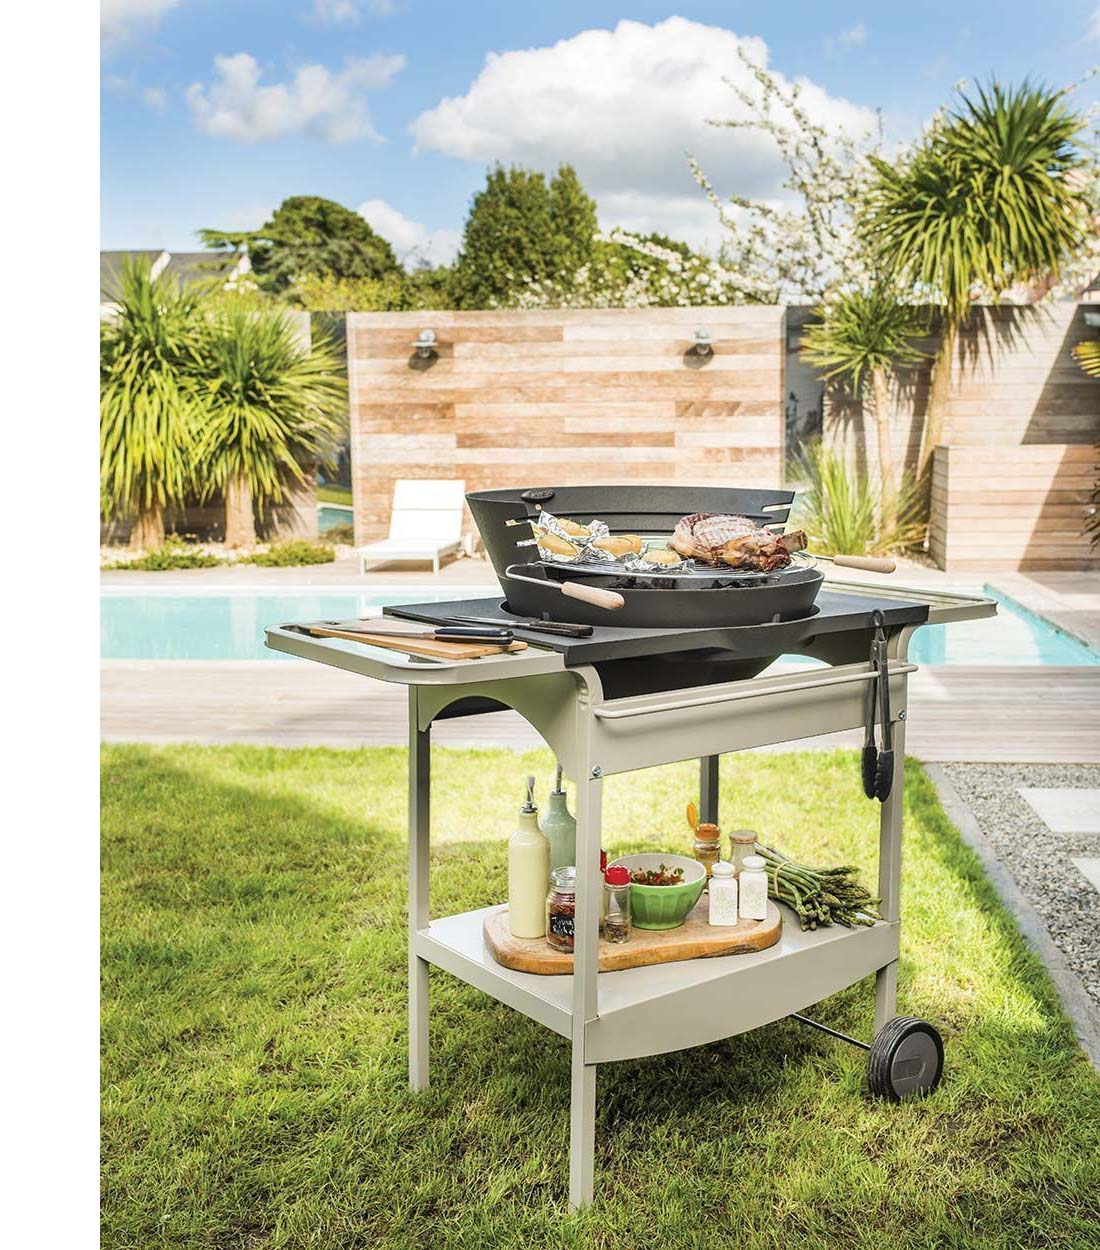 cuisine-exterieure-barbecue-grill-a-charbon